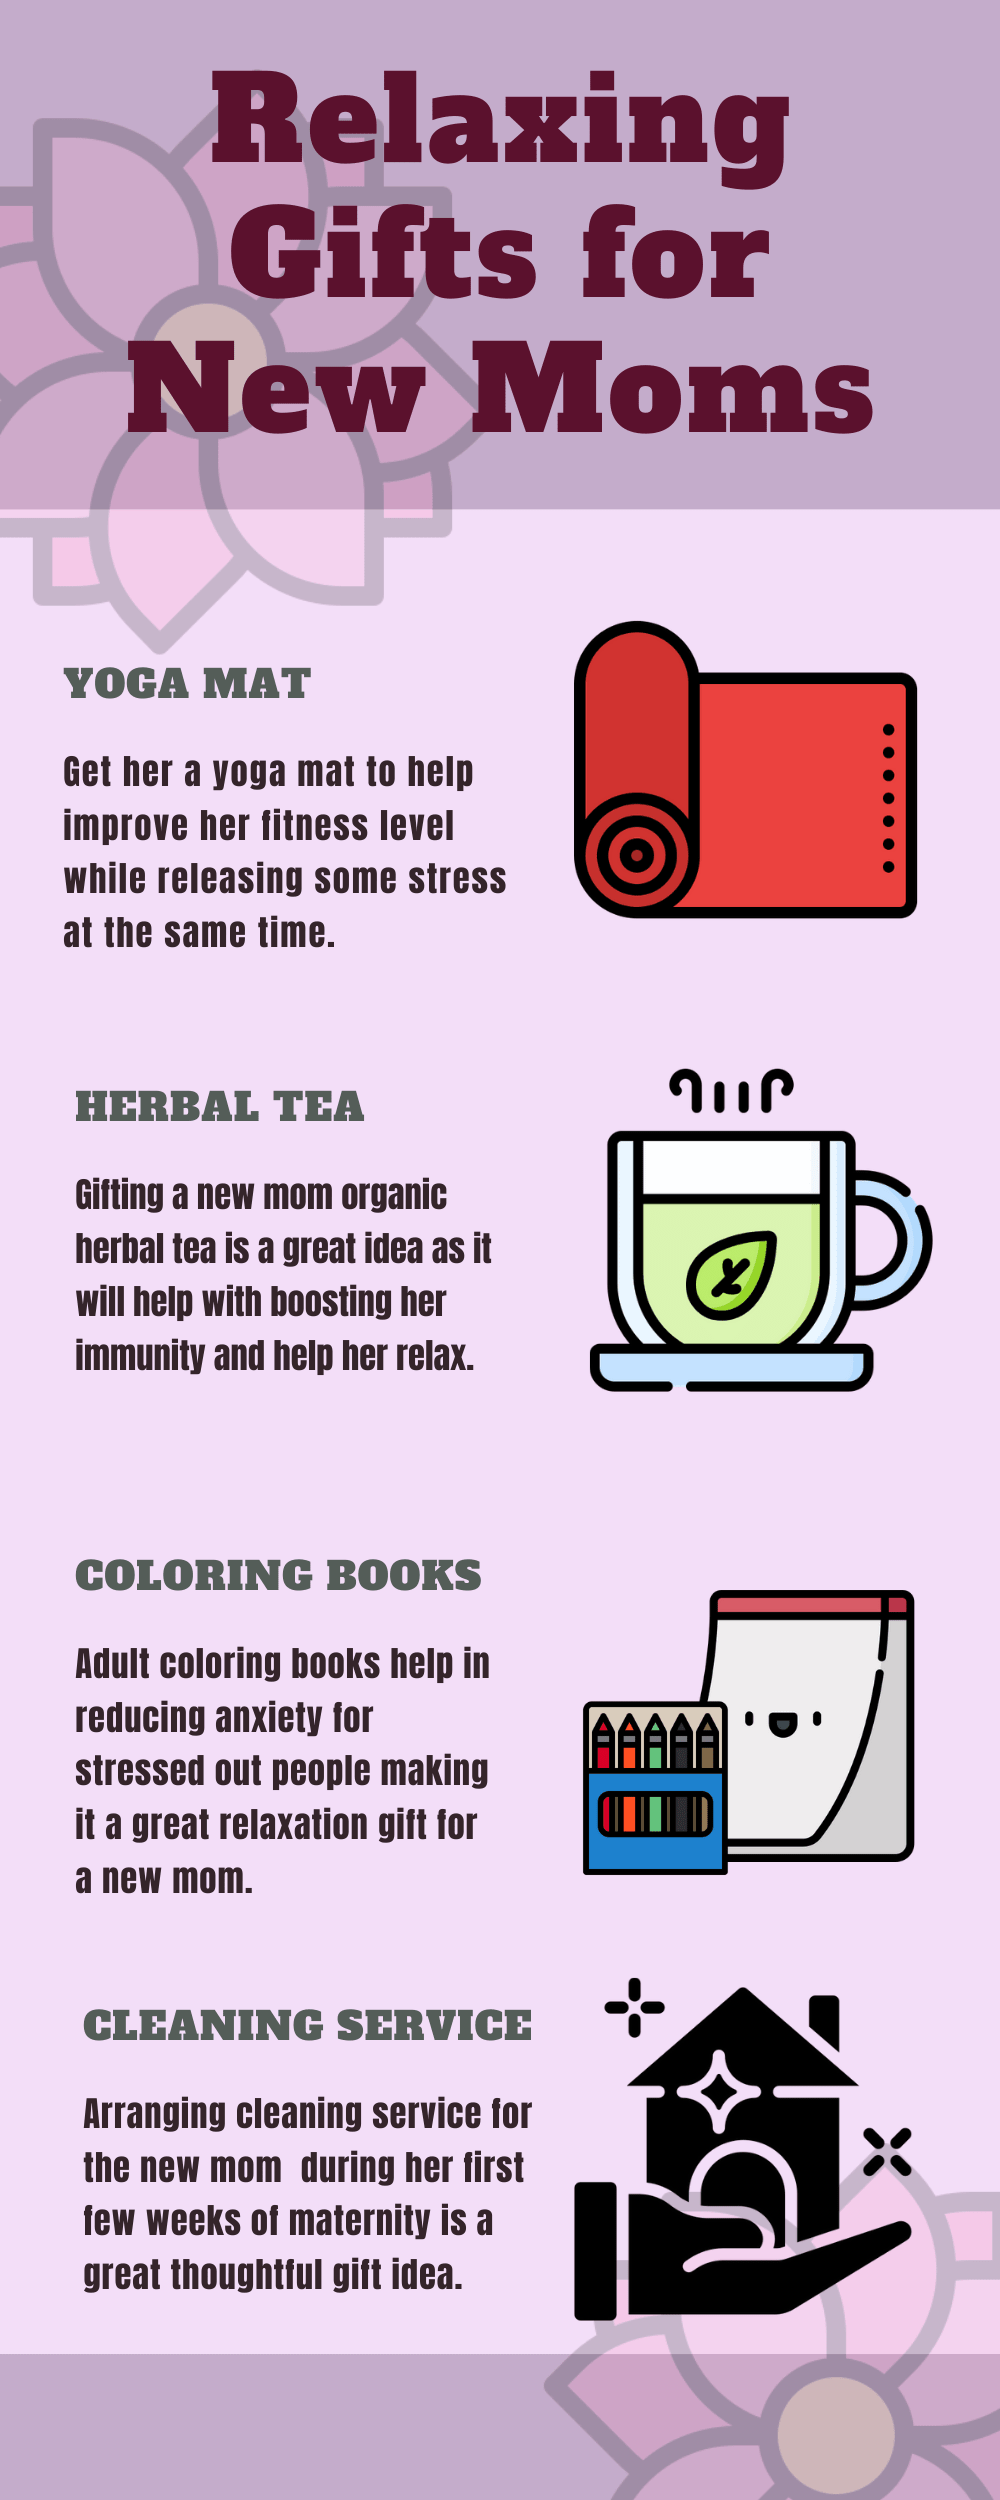 Infographic Relaxing gifts for new mom